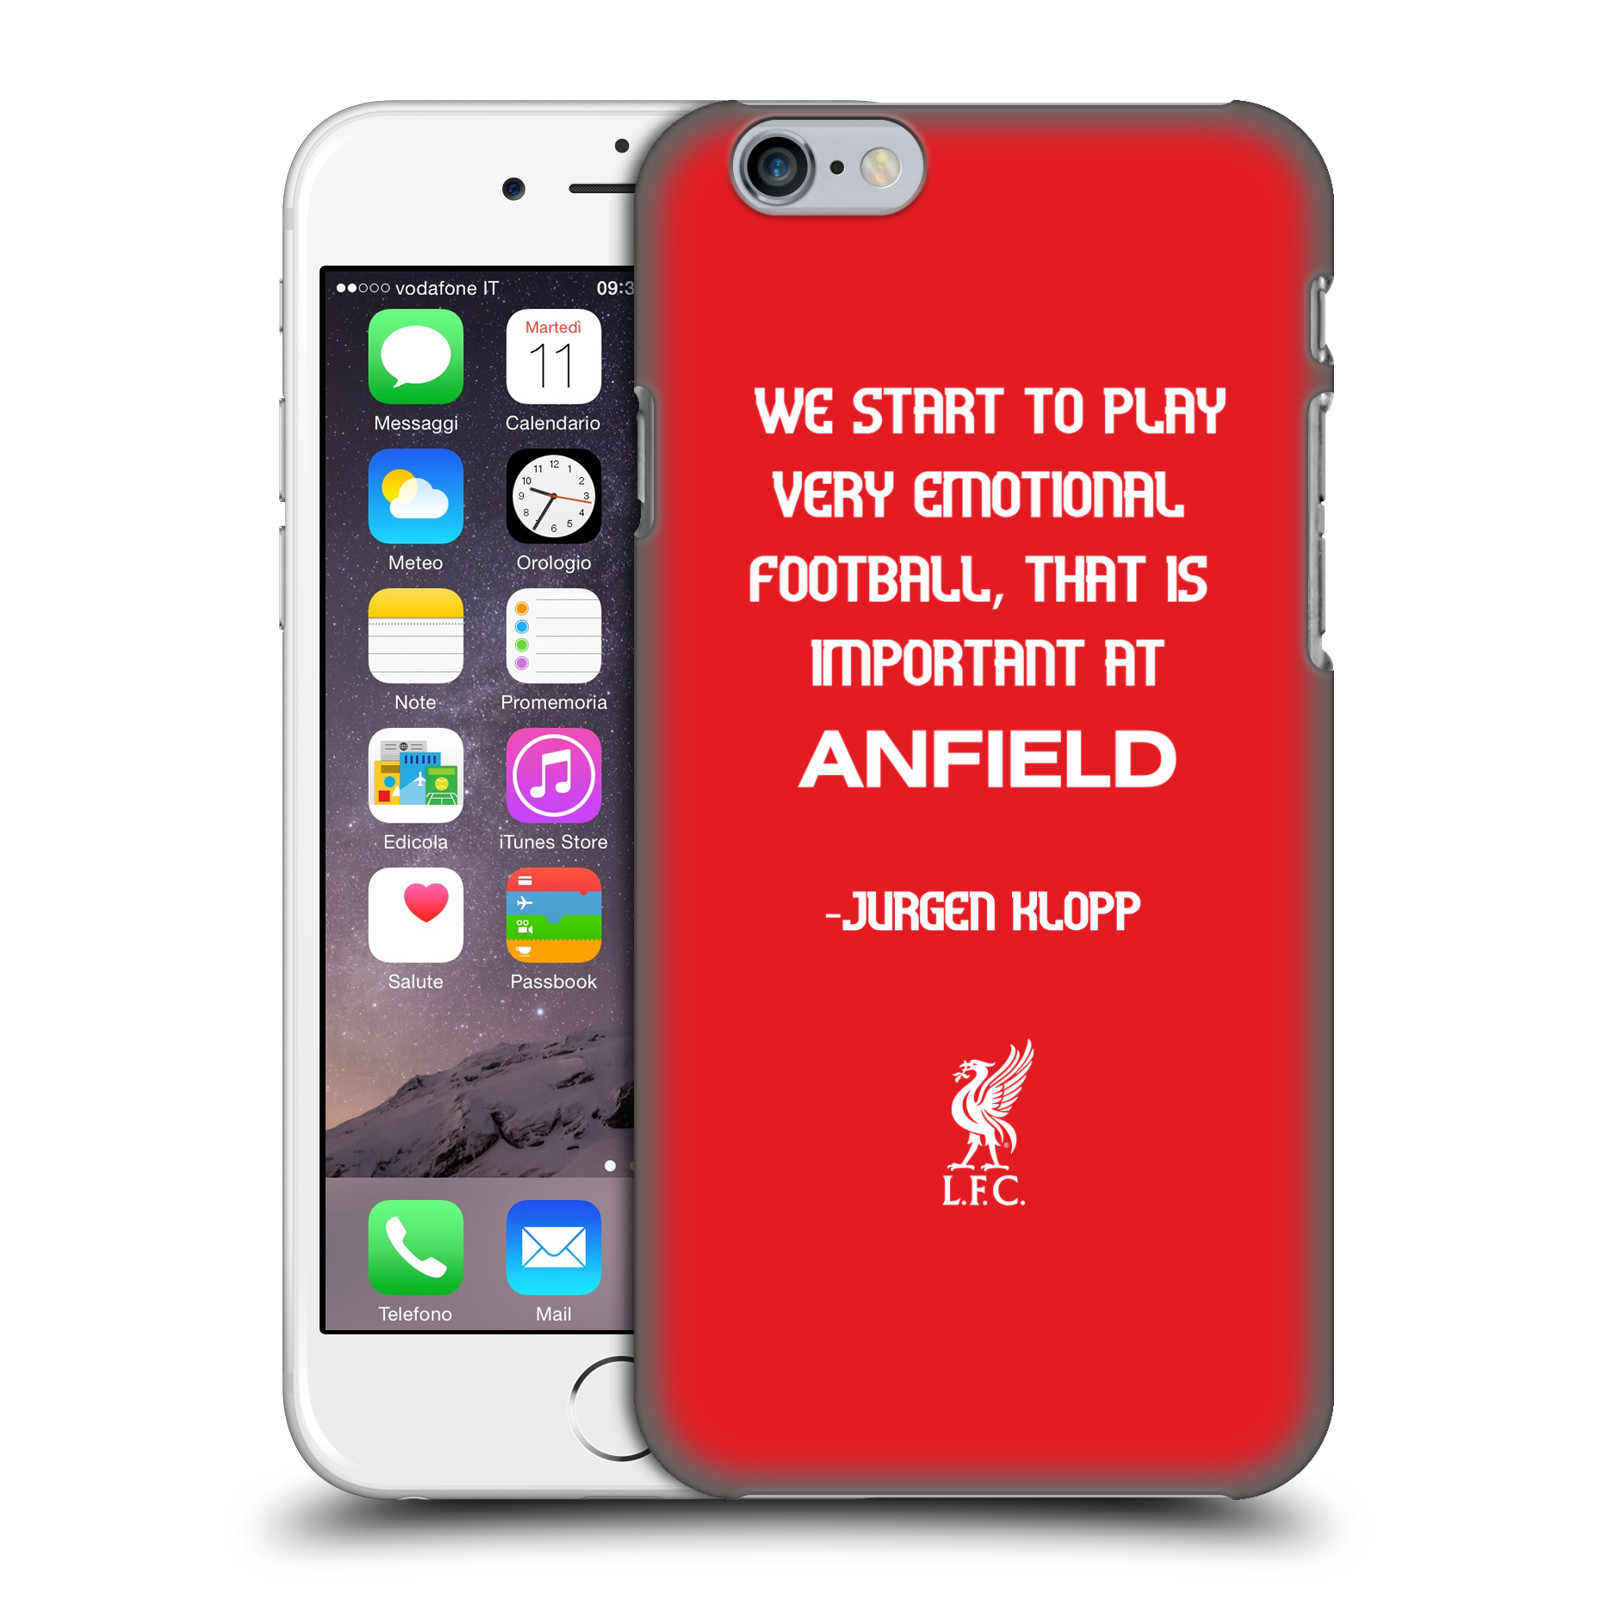 Liverpool FC LFC Klopp Quotes-Emotional Football